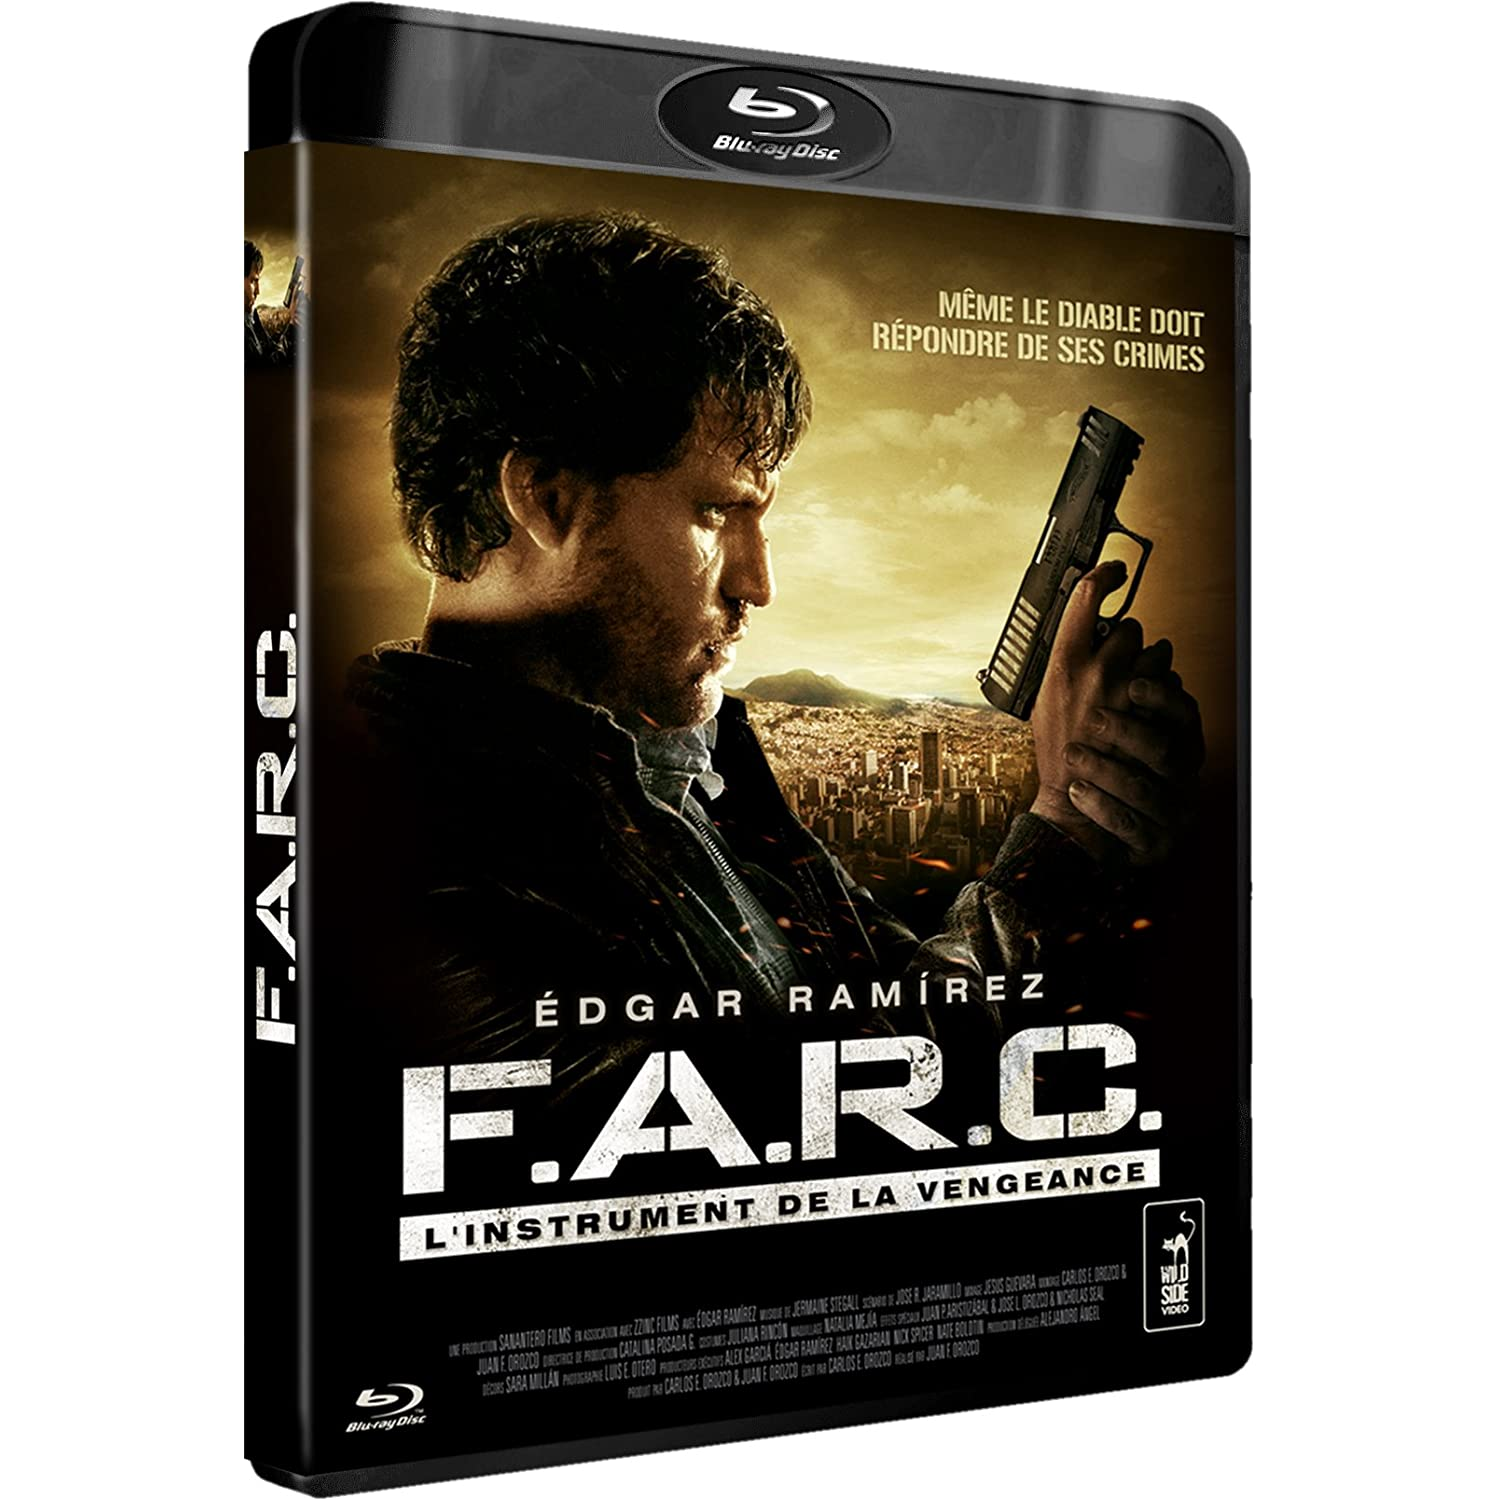 [MULTI] F.A.R.C. L'instrument de la vengeance (2011) [MULTILANGUE Avec TRUEFRENCH] [Bluray 1080p]